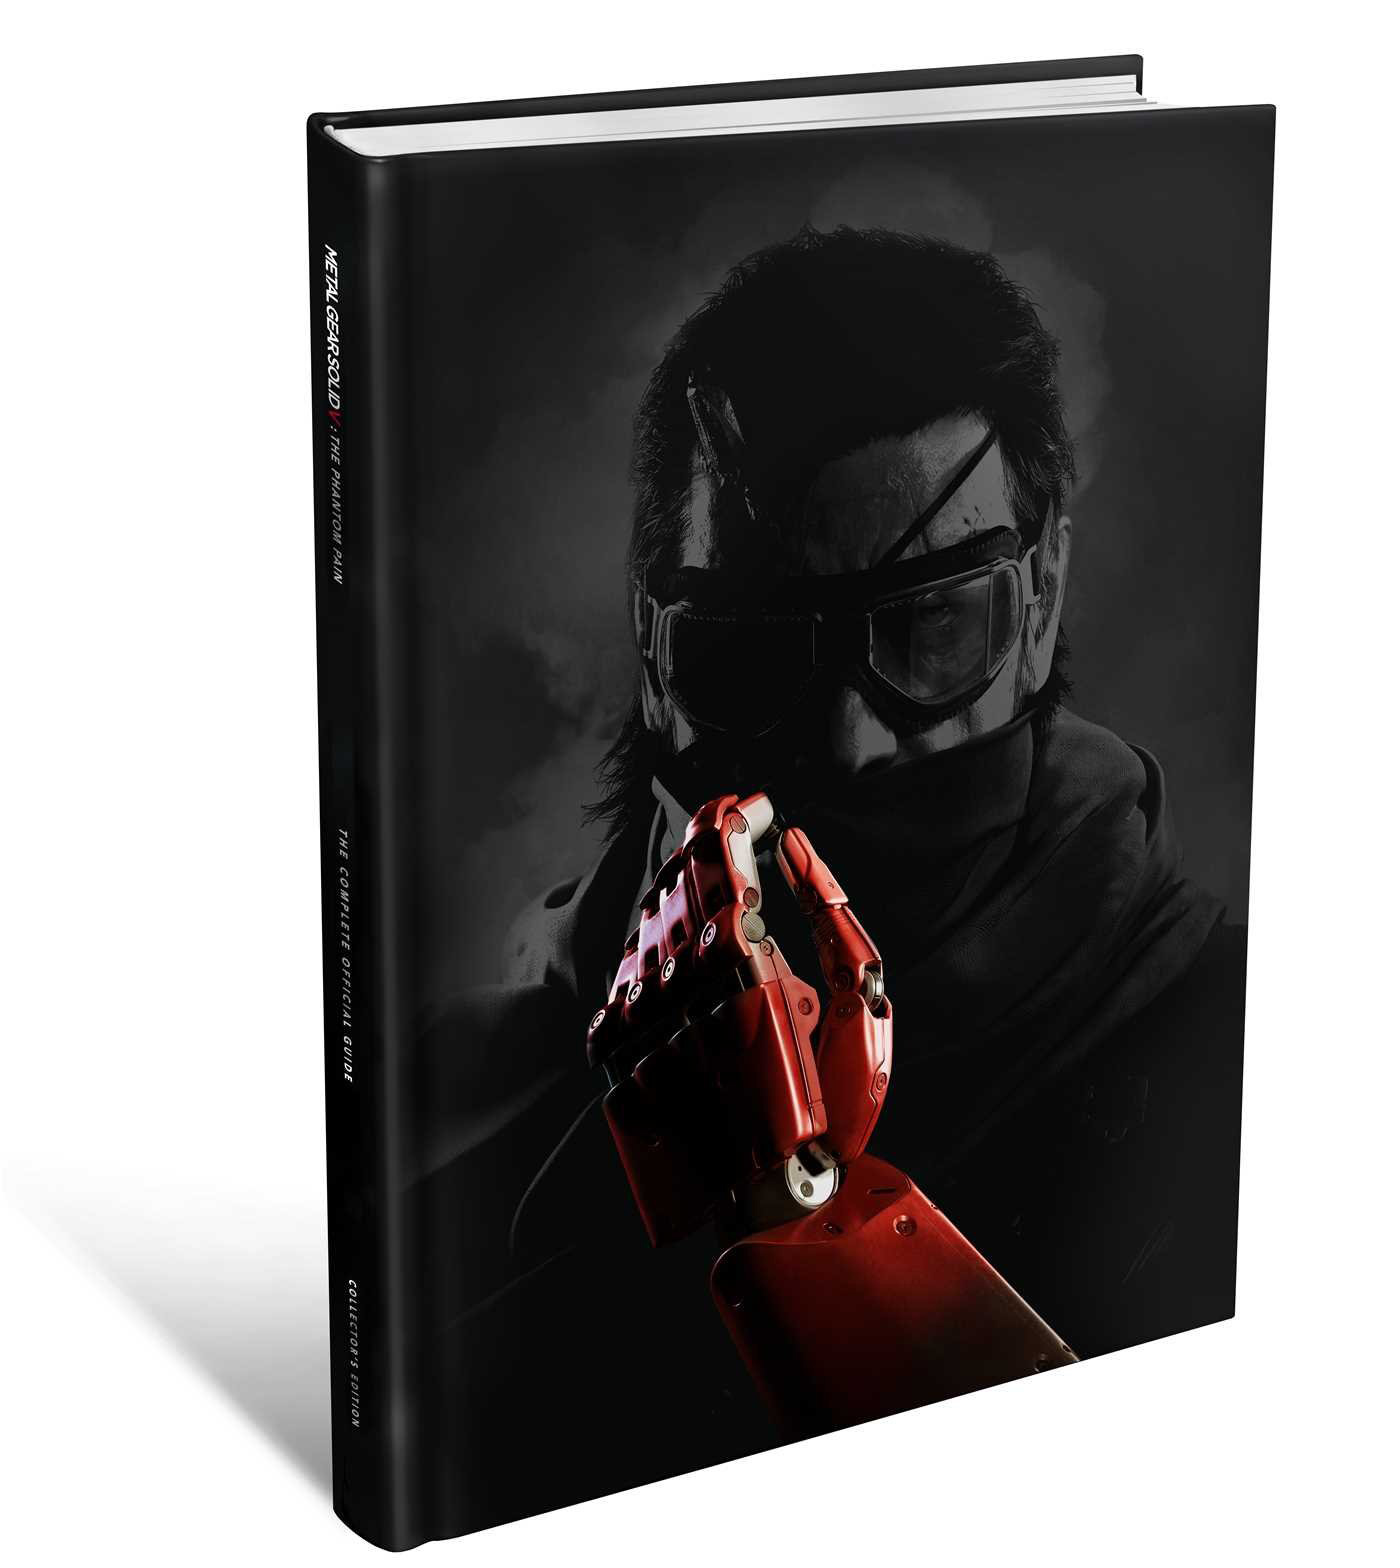 Metal-Gear-Solid-V-The-Phantom-Pain-Piggyback-Collectors-Guide